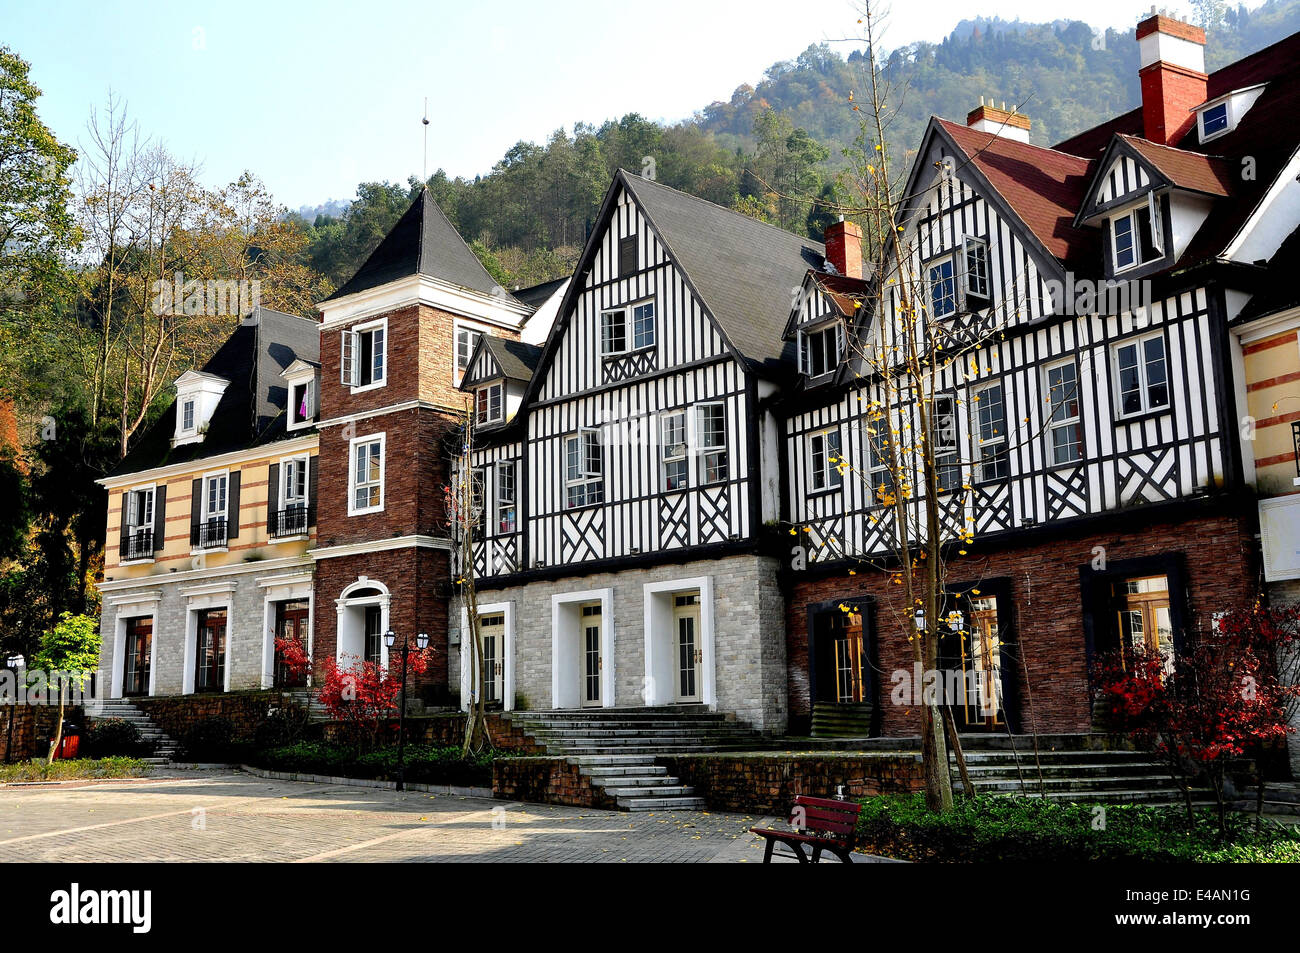 BAI LU, CHINA: French style half-timber manor houses style in the recreated Sino-French village Stock Photo